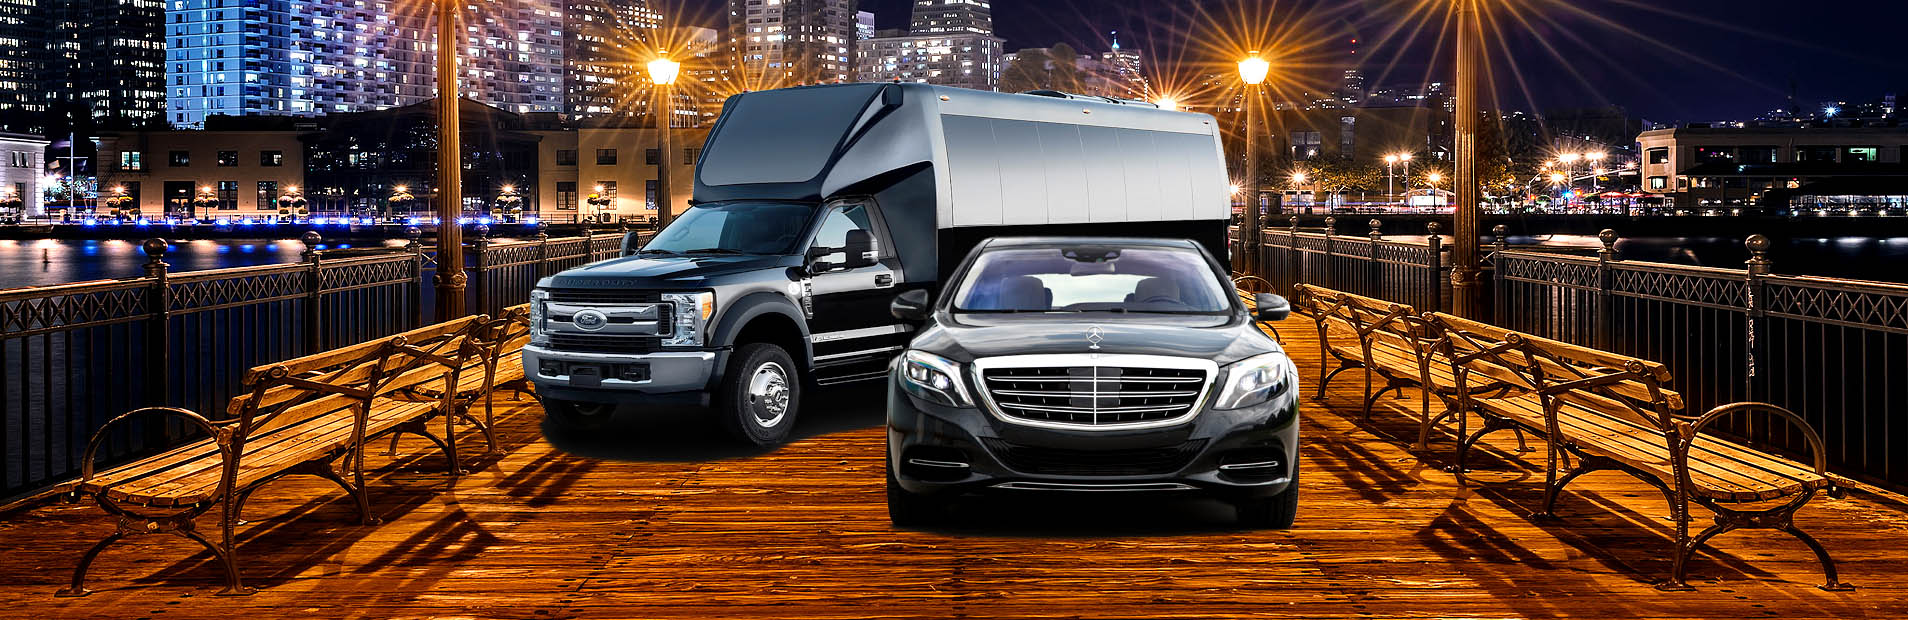 Car Rental Shuttle Honolulu Airport Bay Area Limo Bay Area Corporate Transportation